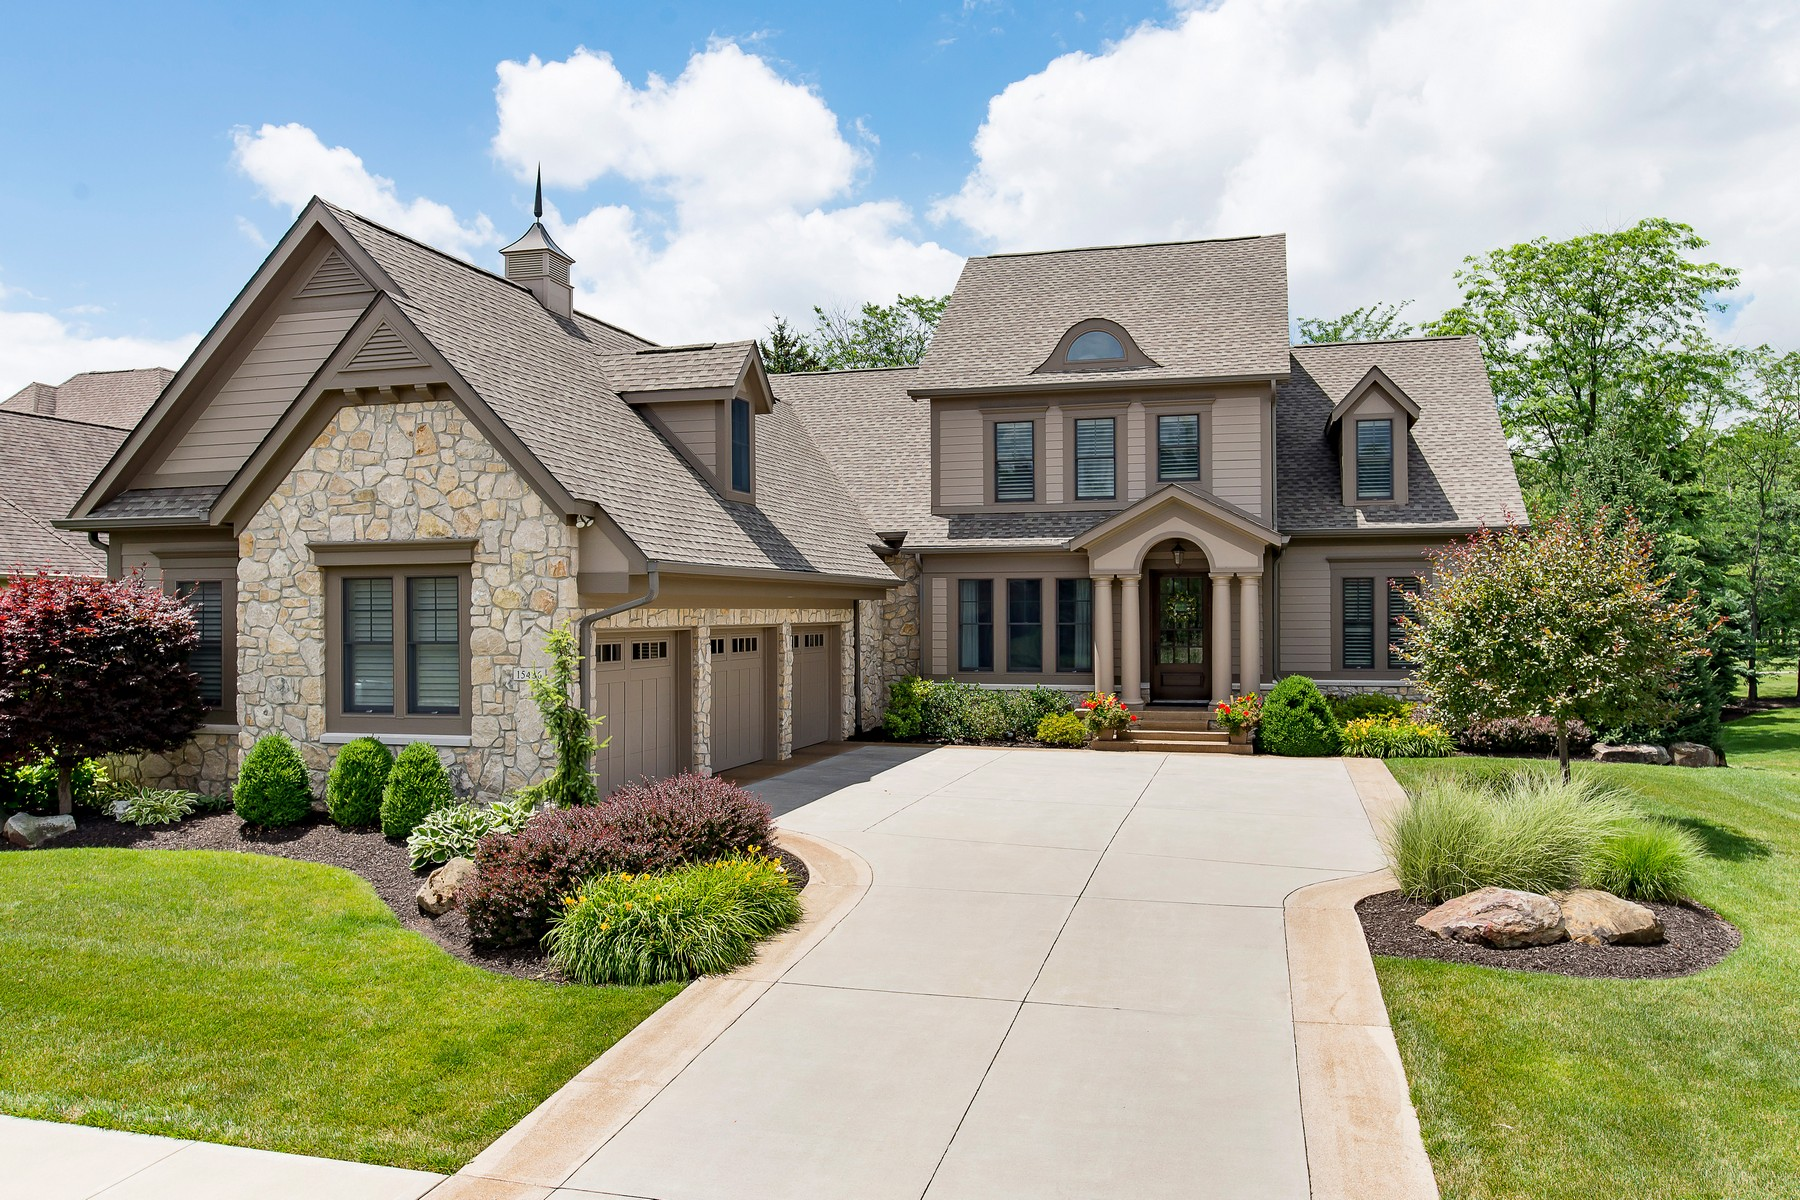 Single Family Home for Sale at Incredible Home on Golf Course 15486 Hidden Oaks Lane Carmel, Indiana, 46033 United States